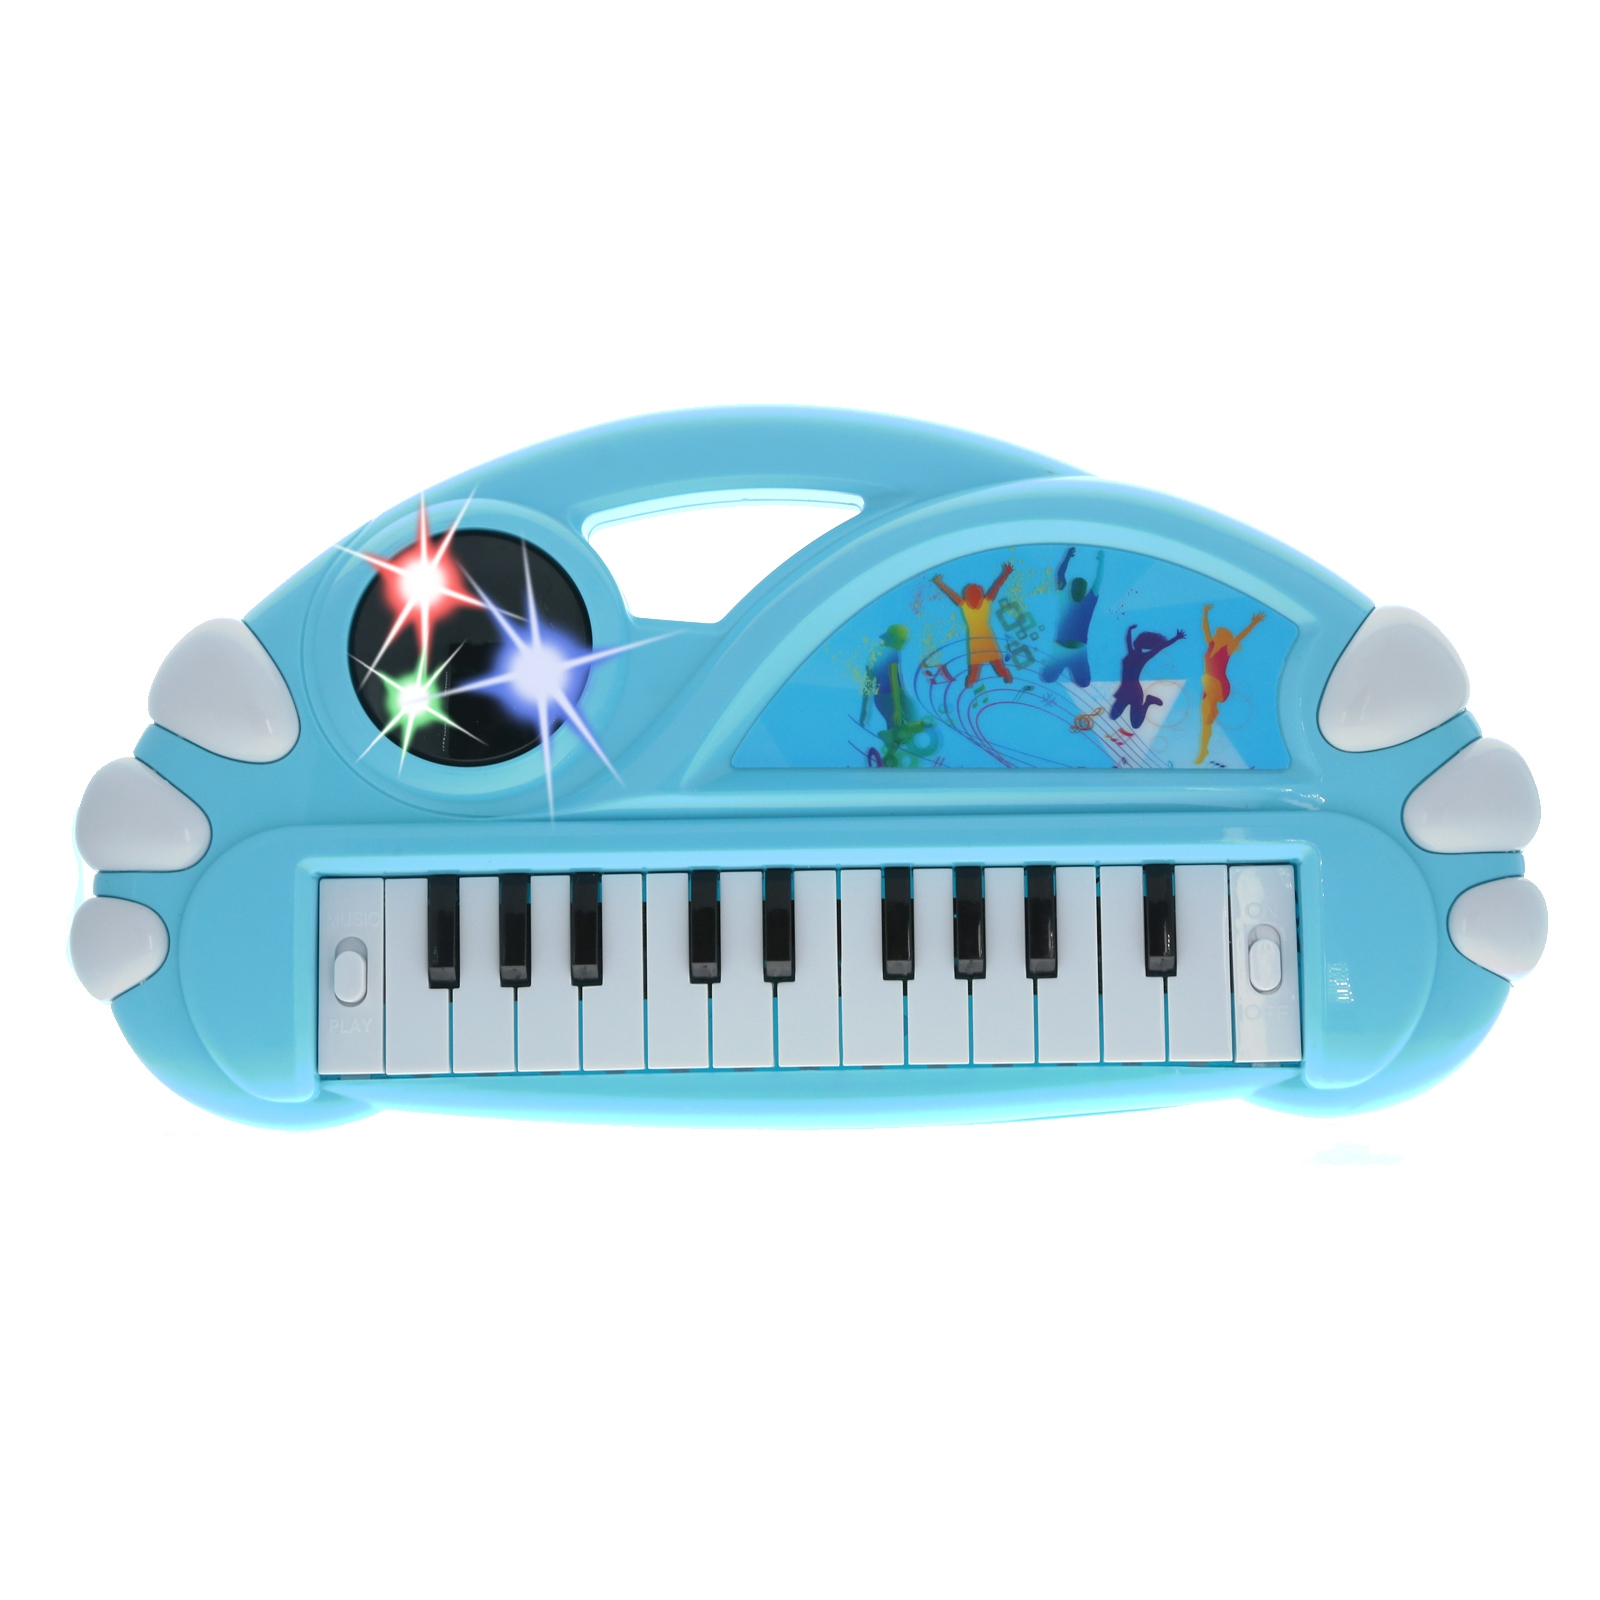 KidPlay Organ Musical Instrument Electronic Keyboard Kids Toy - Blue